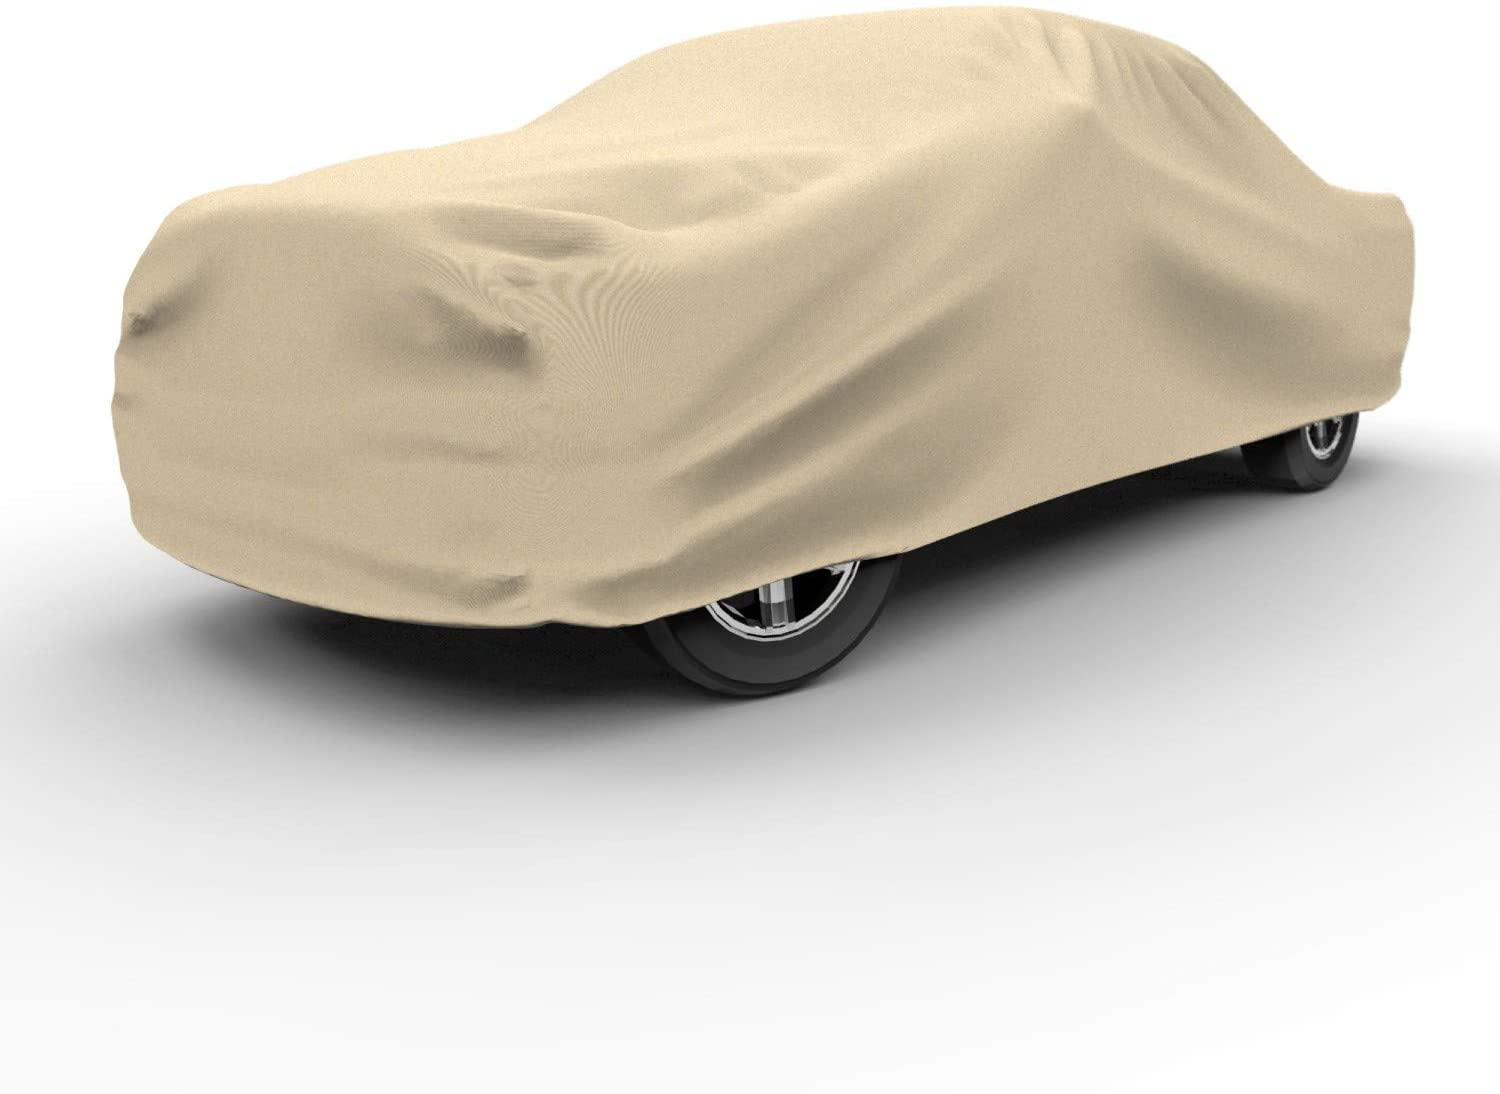 Waterproof 84 inches Dustproof UV Treated 4 Layer Reliable Weather Protection Budge TA-3X Protector IV Truck Cover Tan Size 3X: Extended Cab Max Bed Length 7